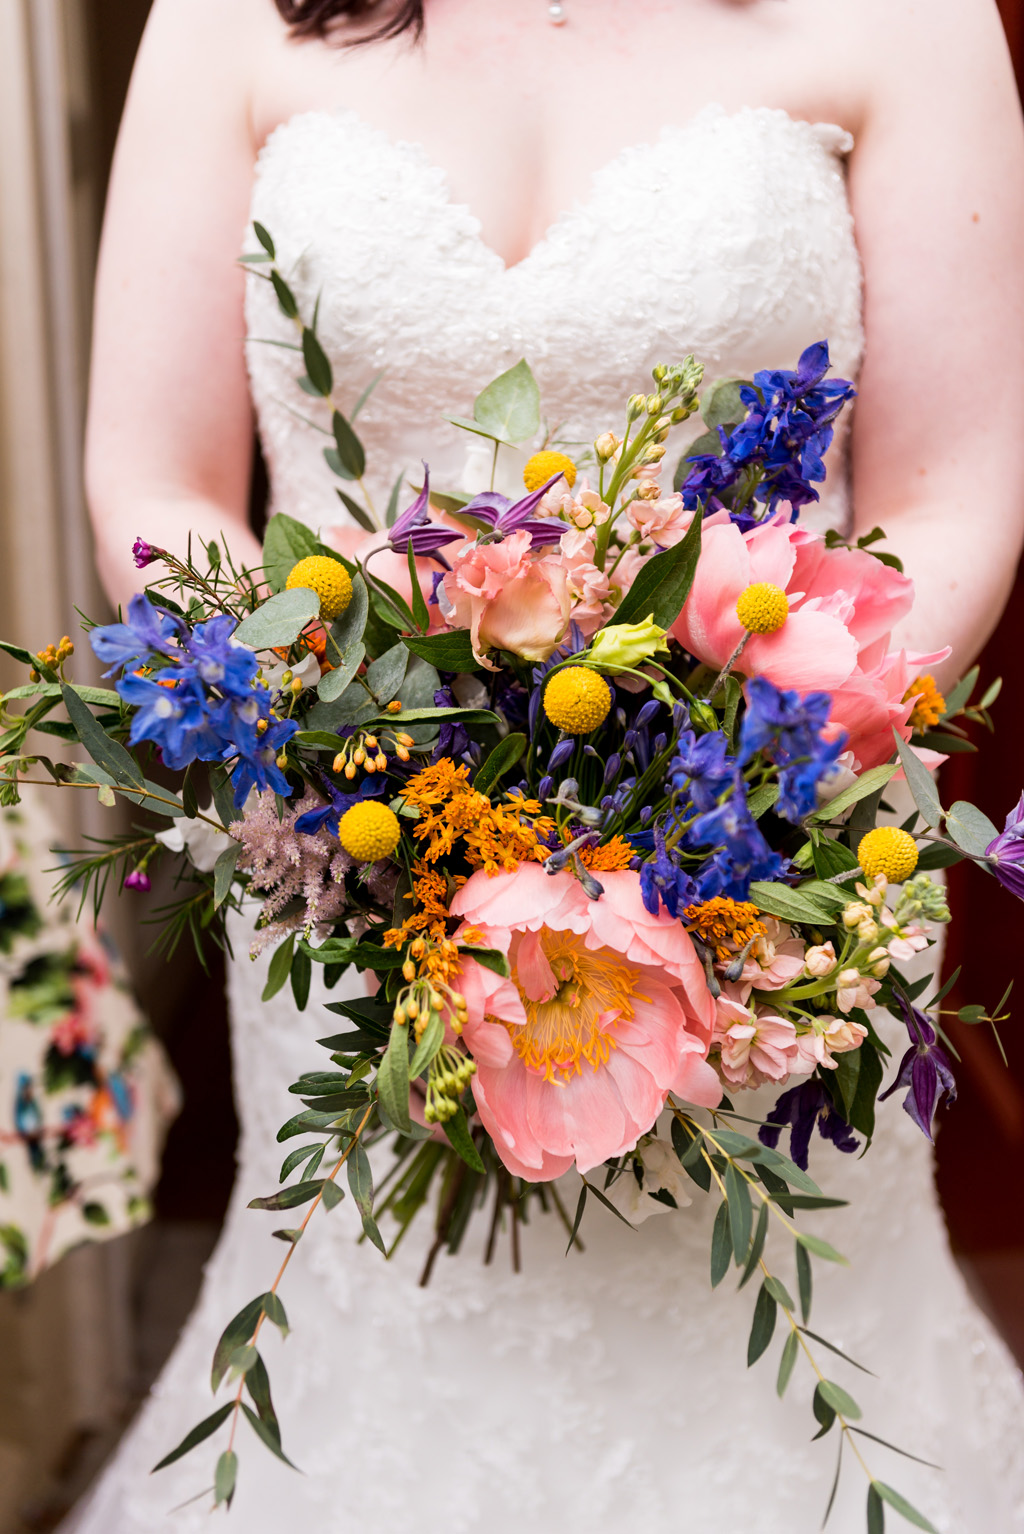 Colourful wedding bouquet with peonies and delphiniums